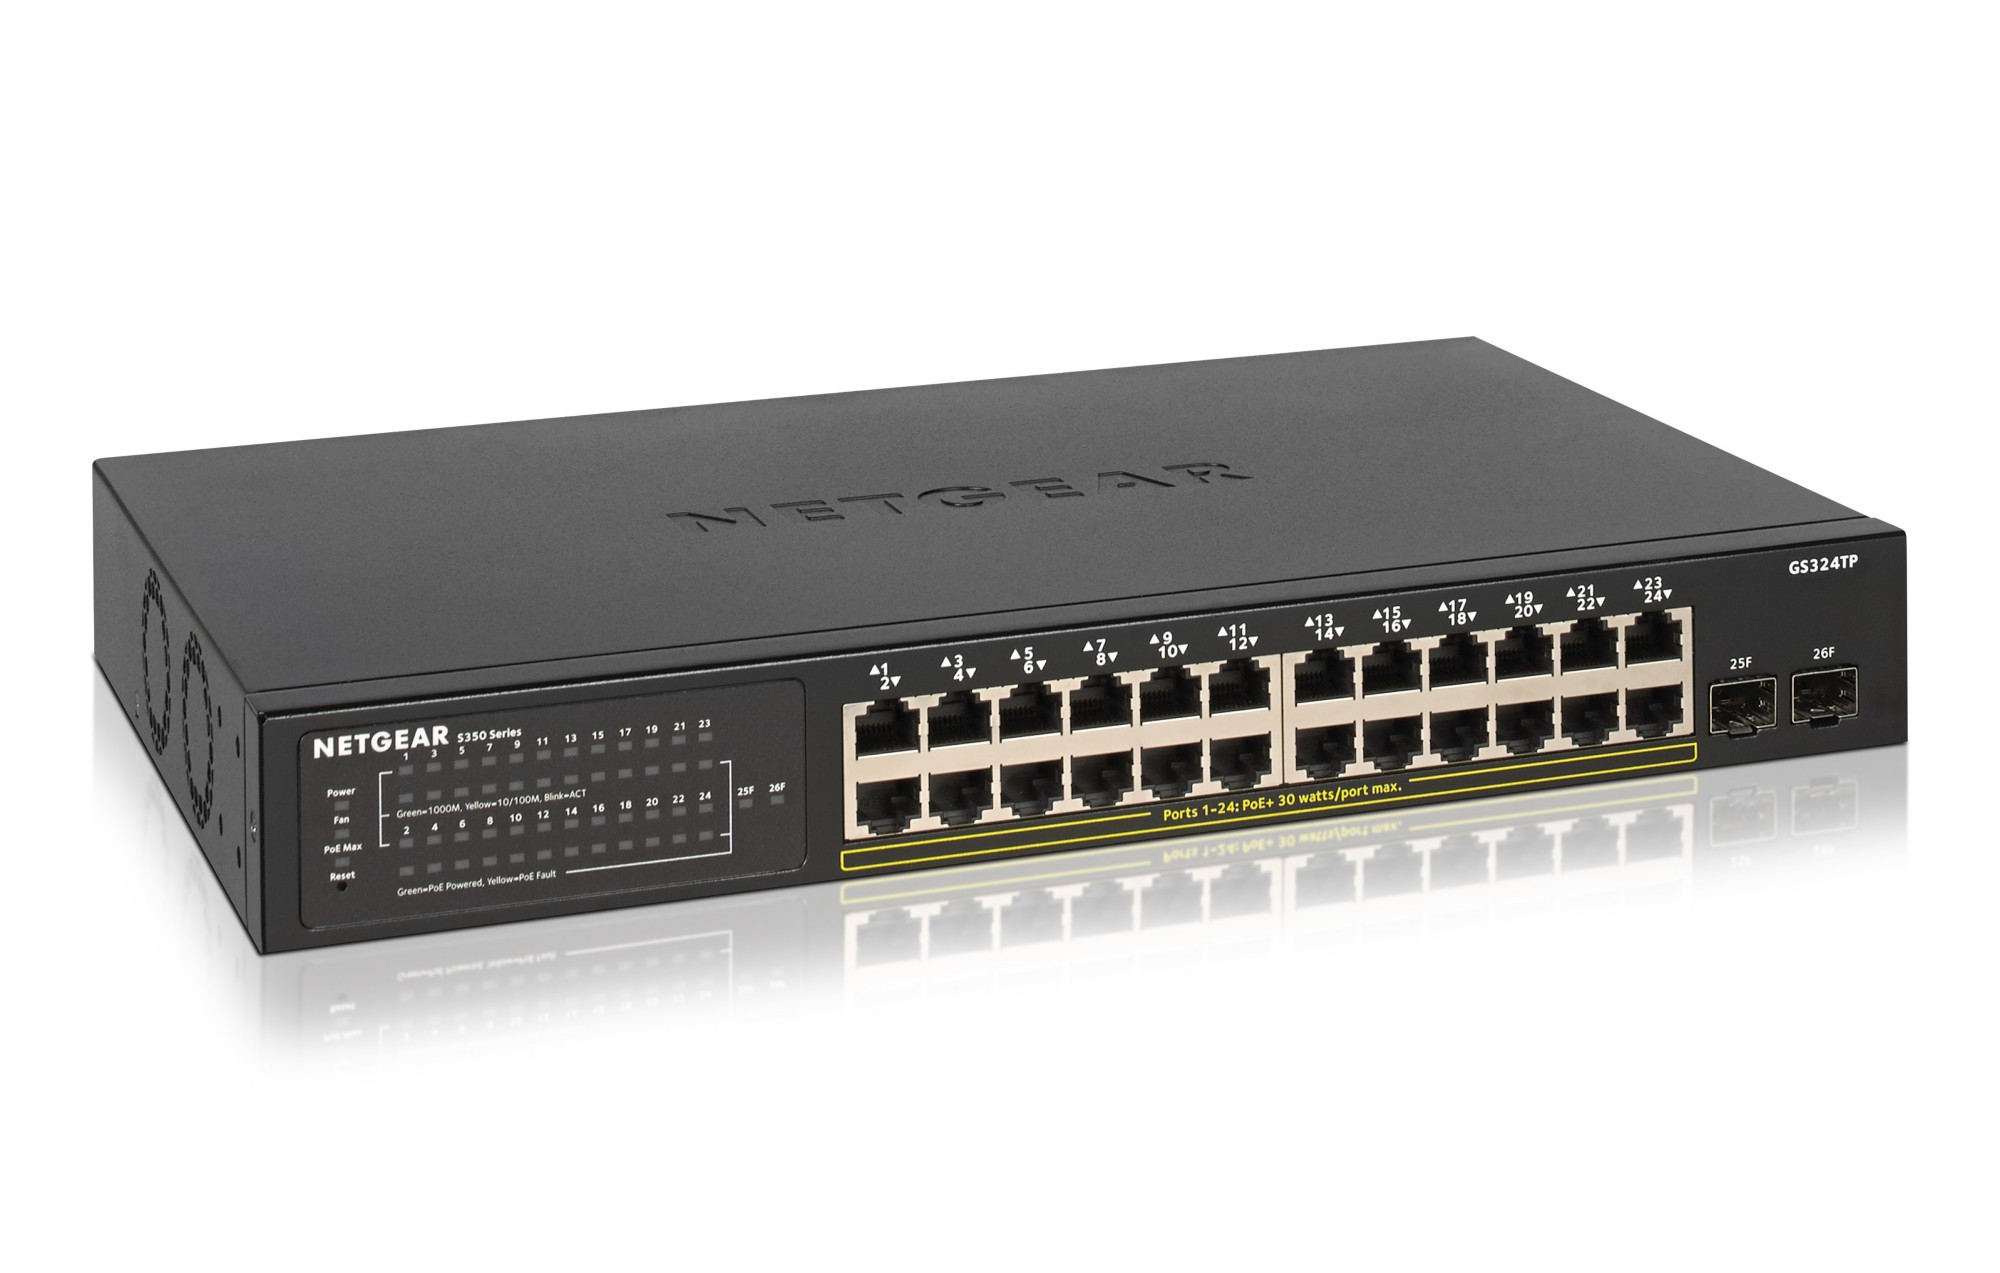 Netgear GS324TP Managed Gigabit Ethernet (10/100/1000) Black Power over Ethernet (PoE)